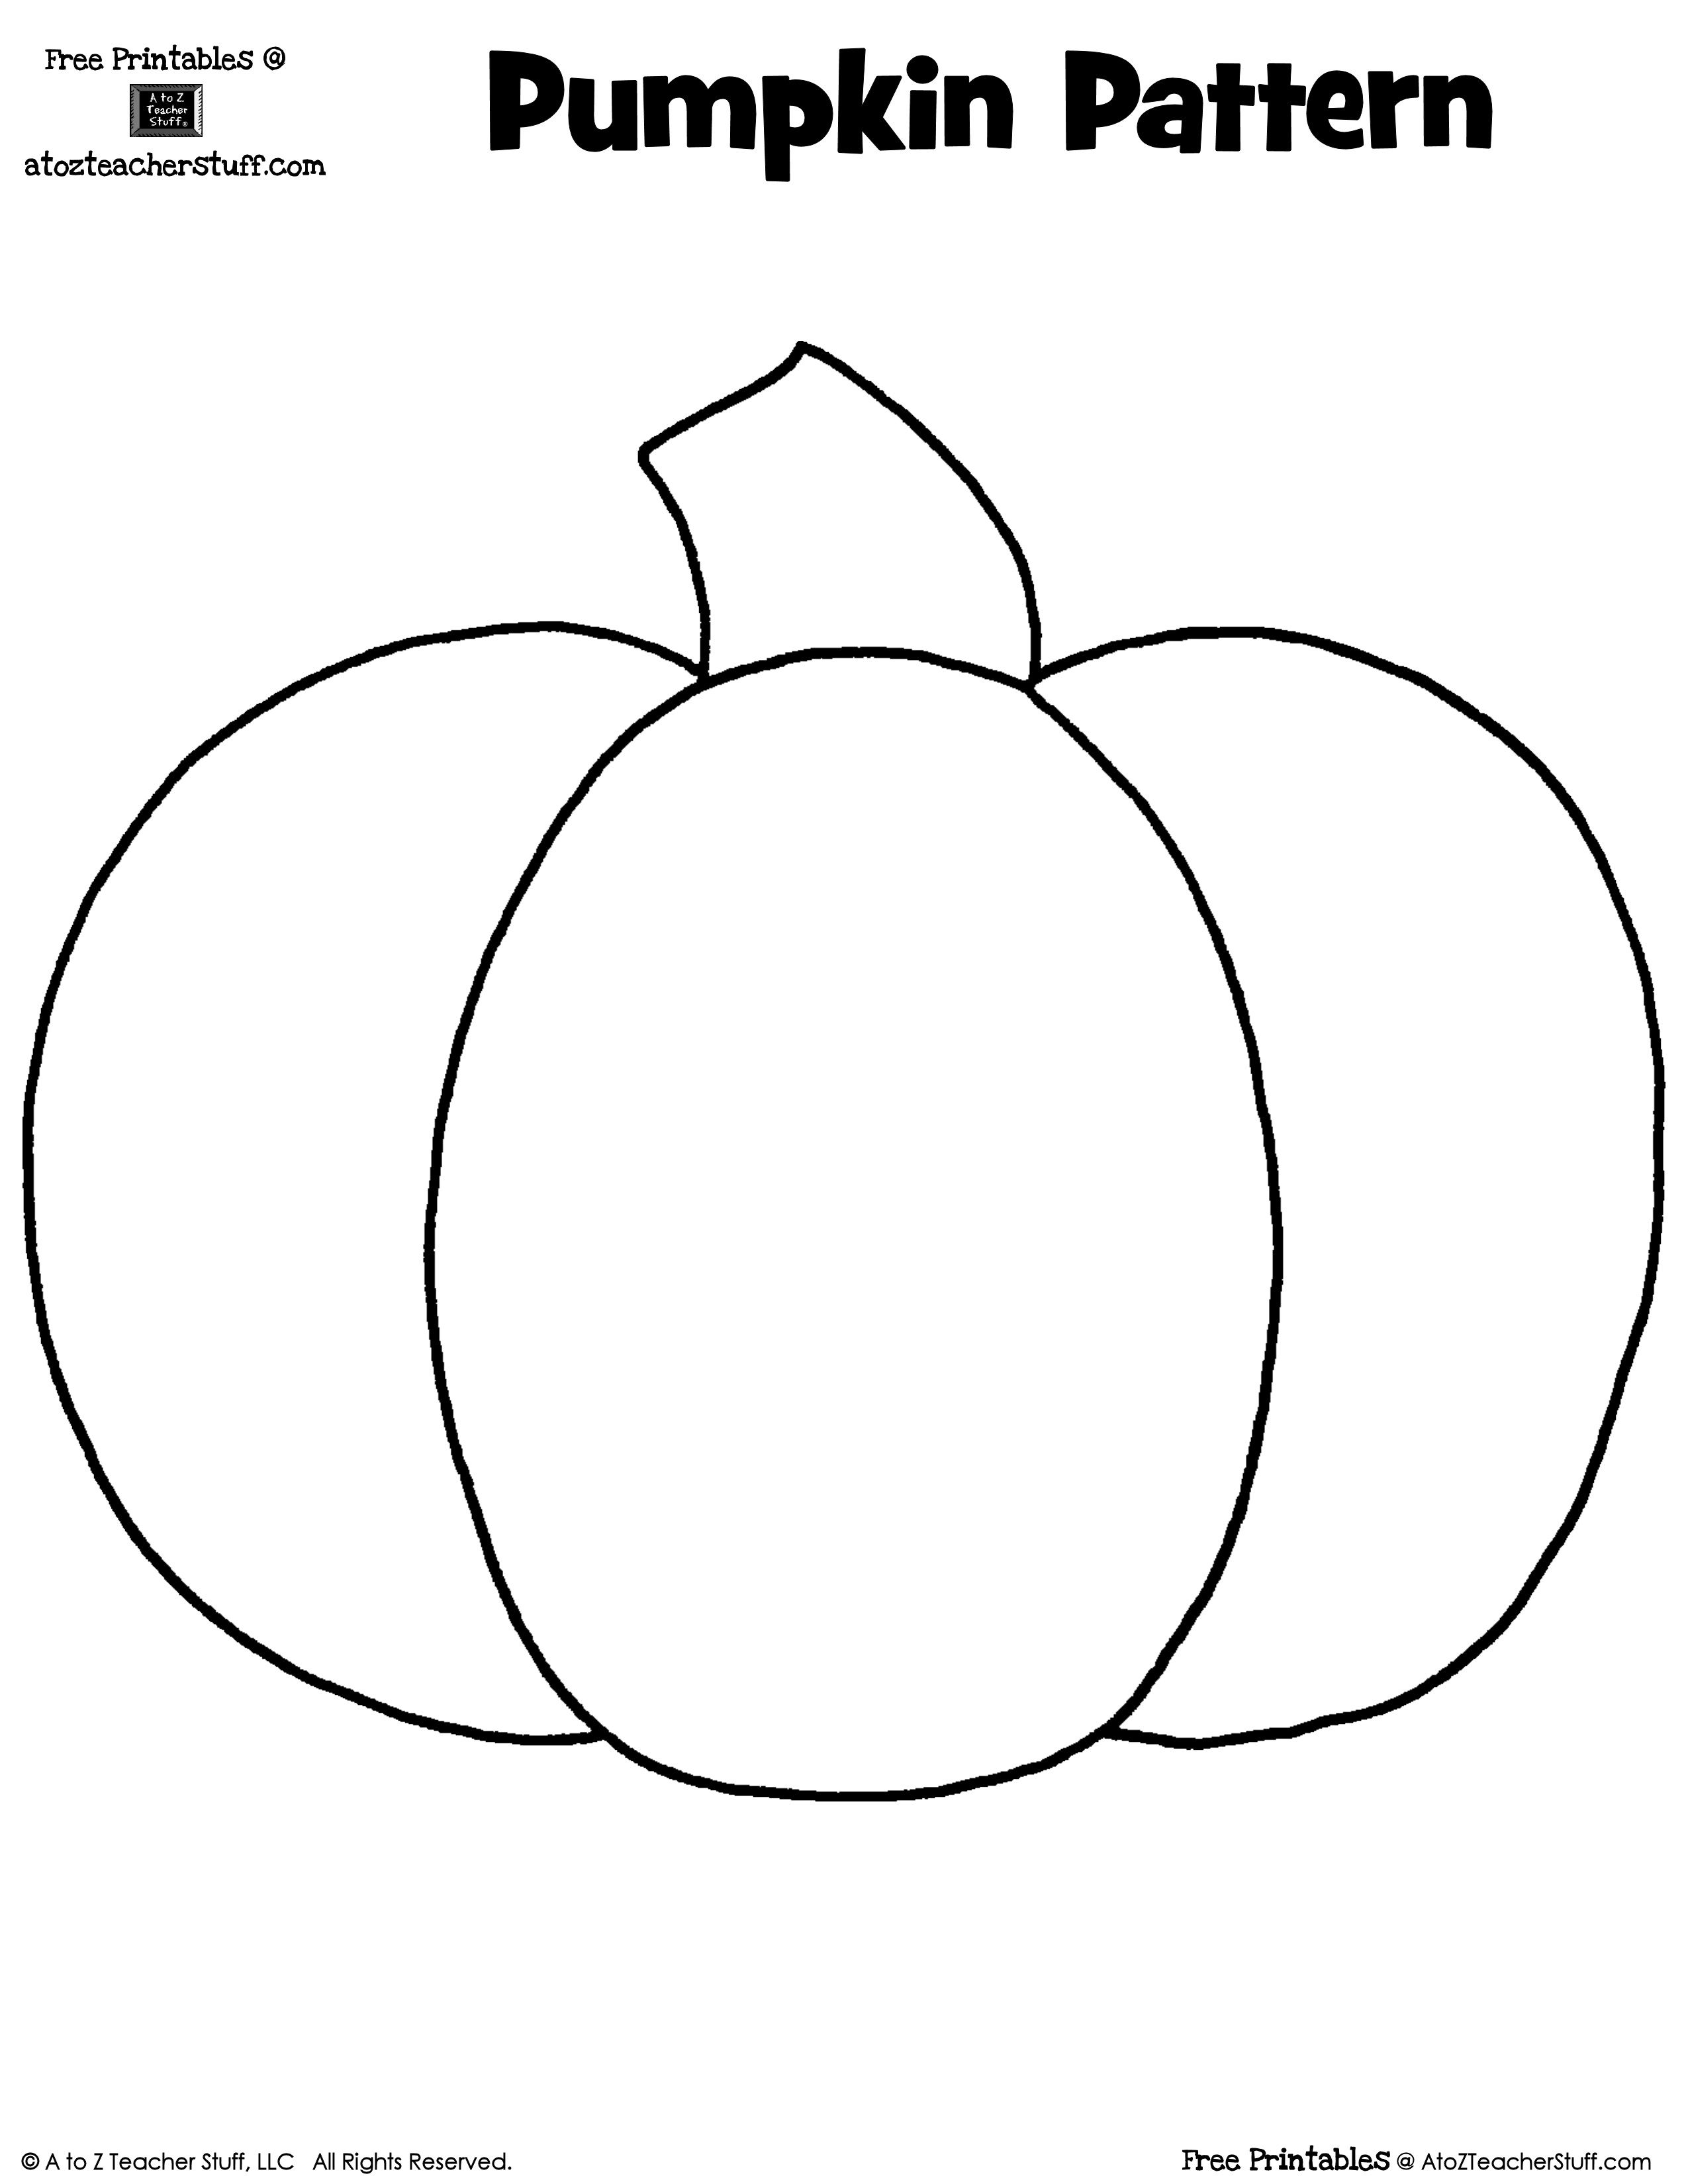 005 Frightening Free Pumpkin Template Printable High Def  Easy Carving Scary StencilFull